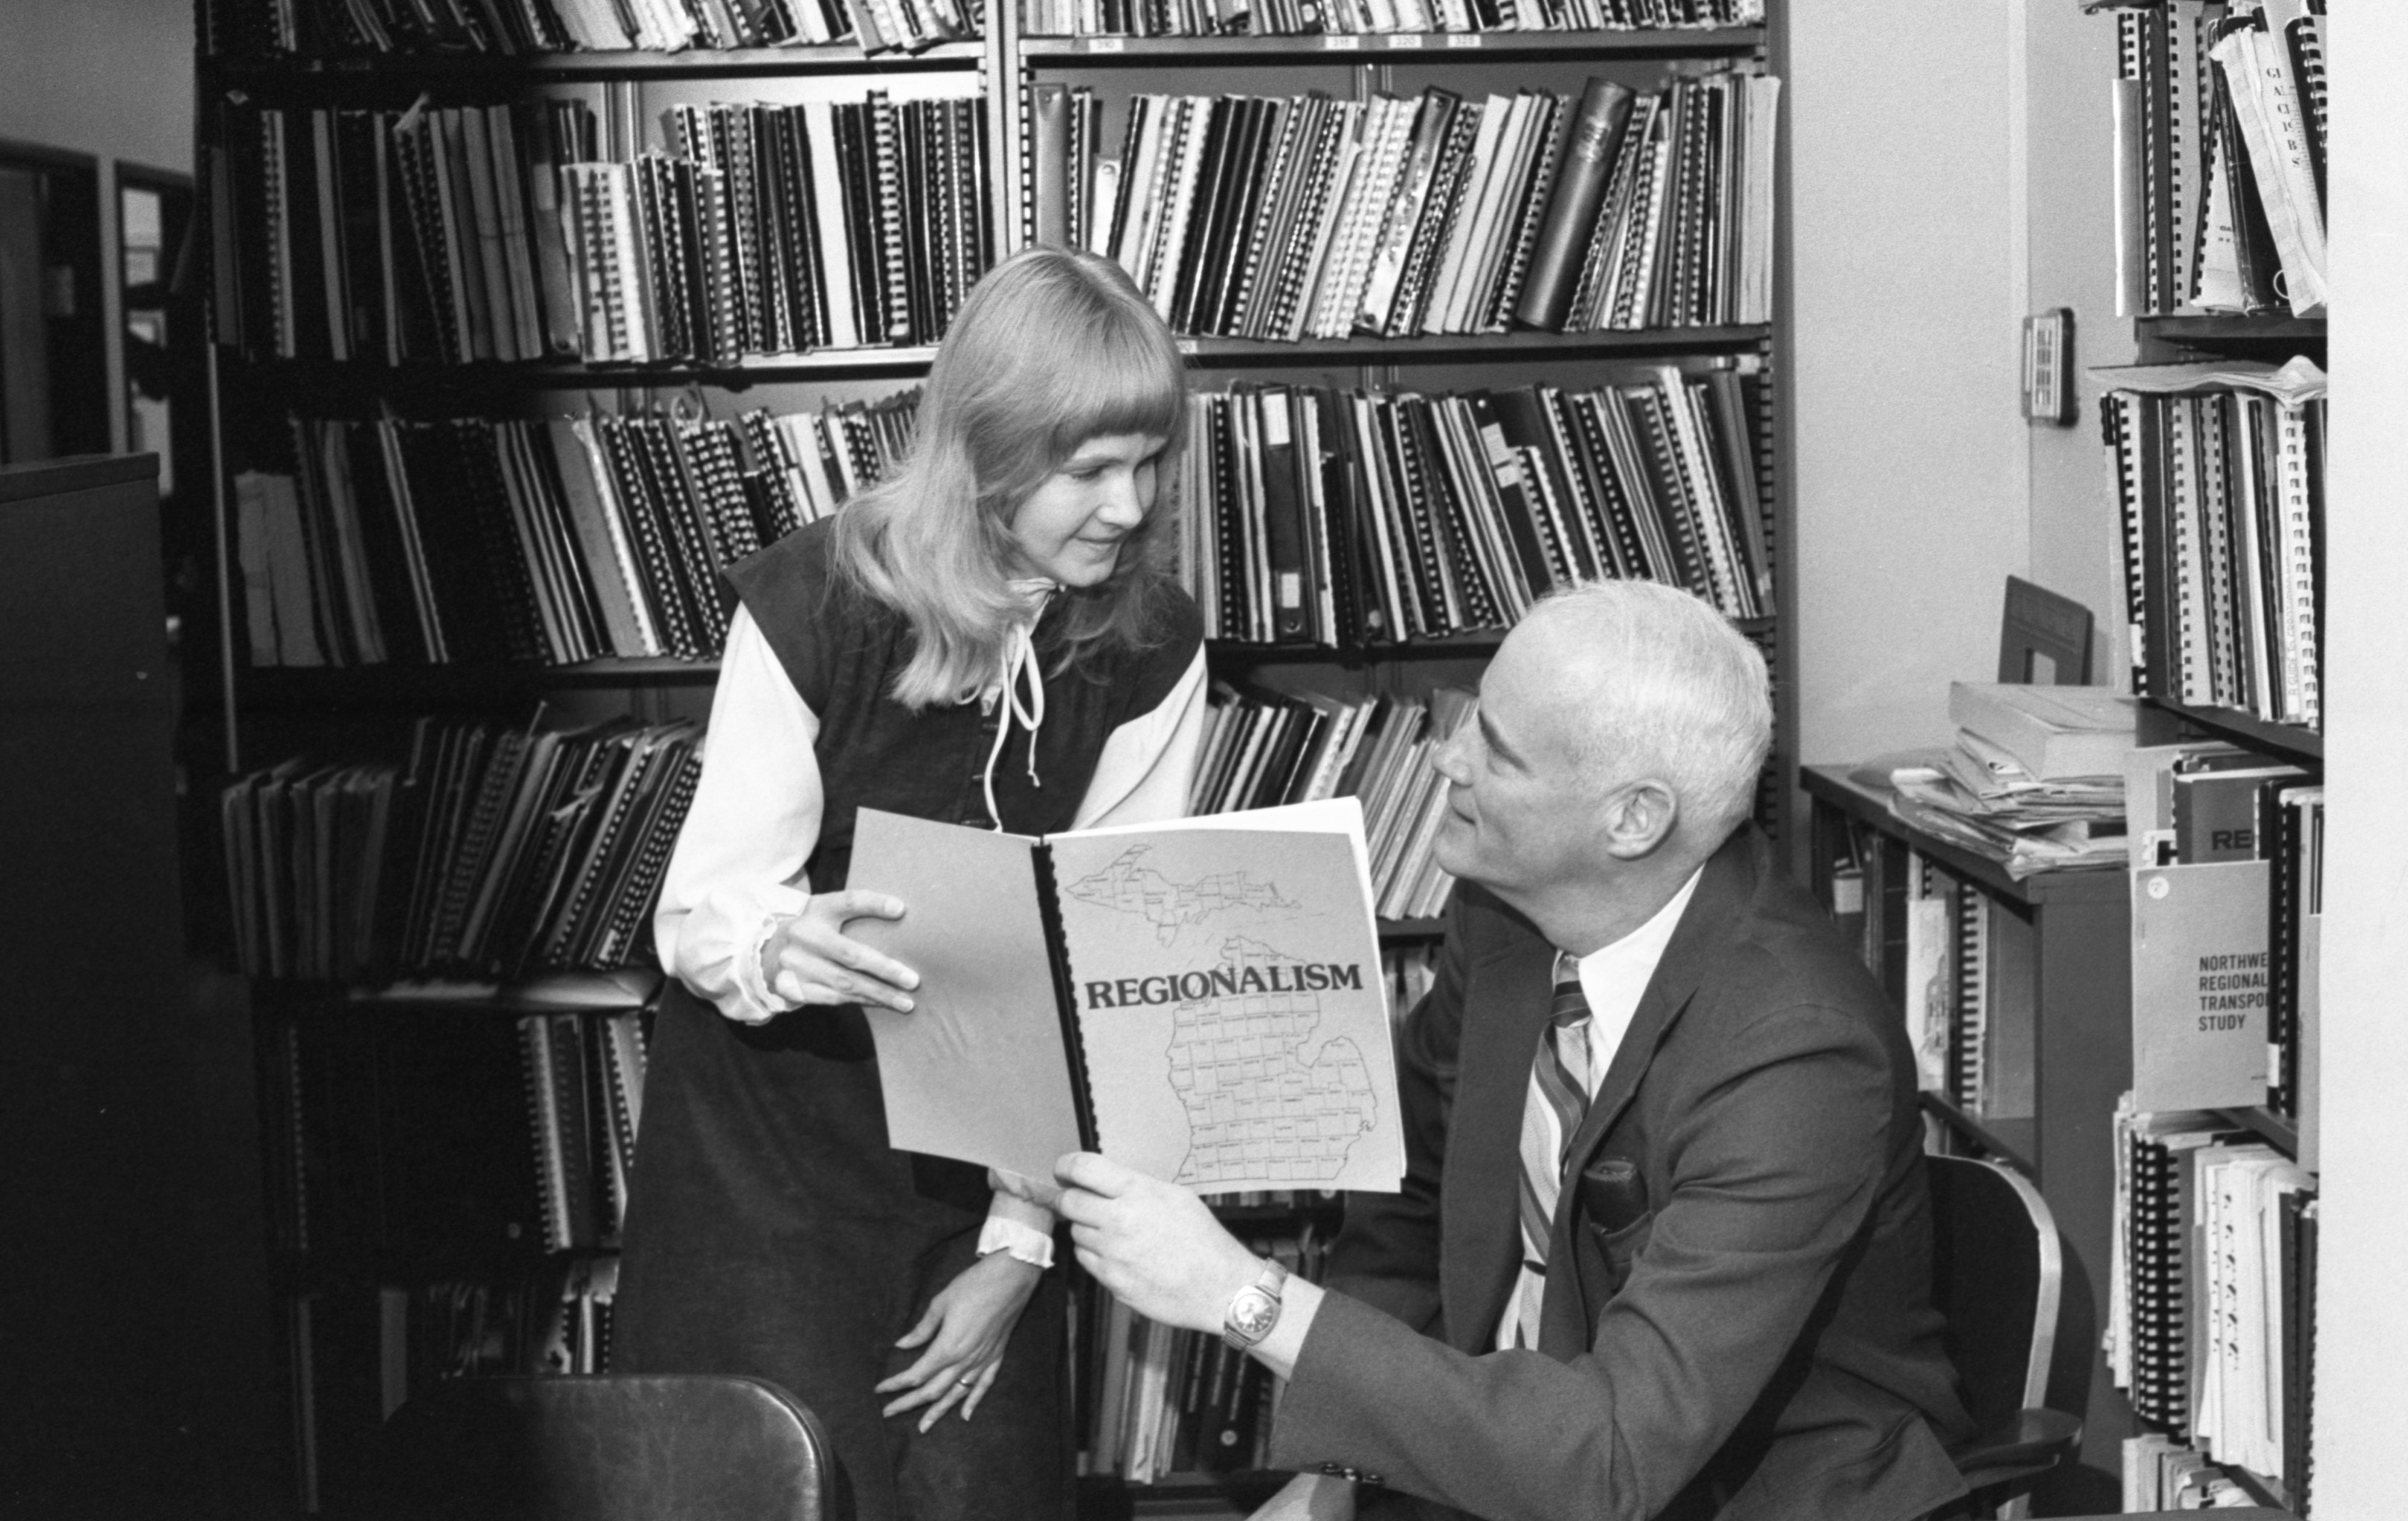 Mariana Kopacz & Thomas J. Fegan With The New League Of Women Voters Publication, January 1982 image